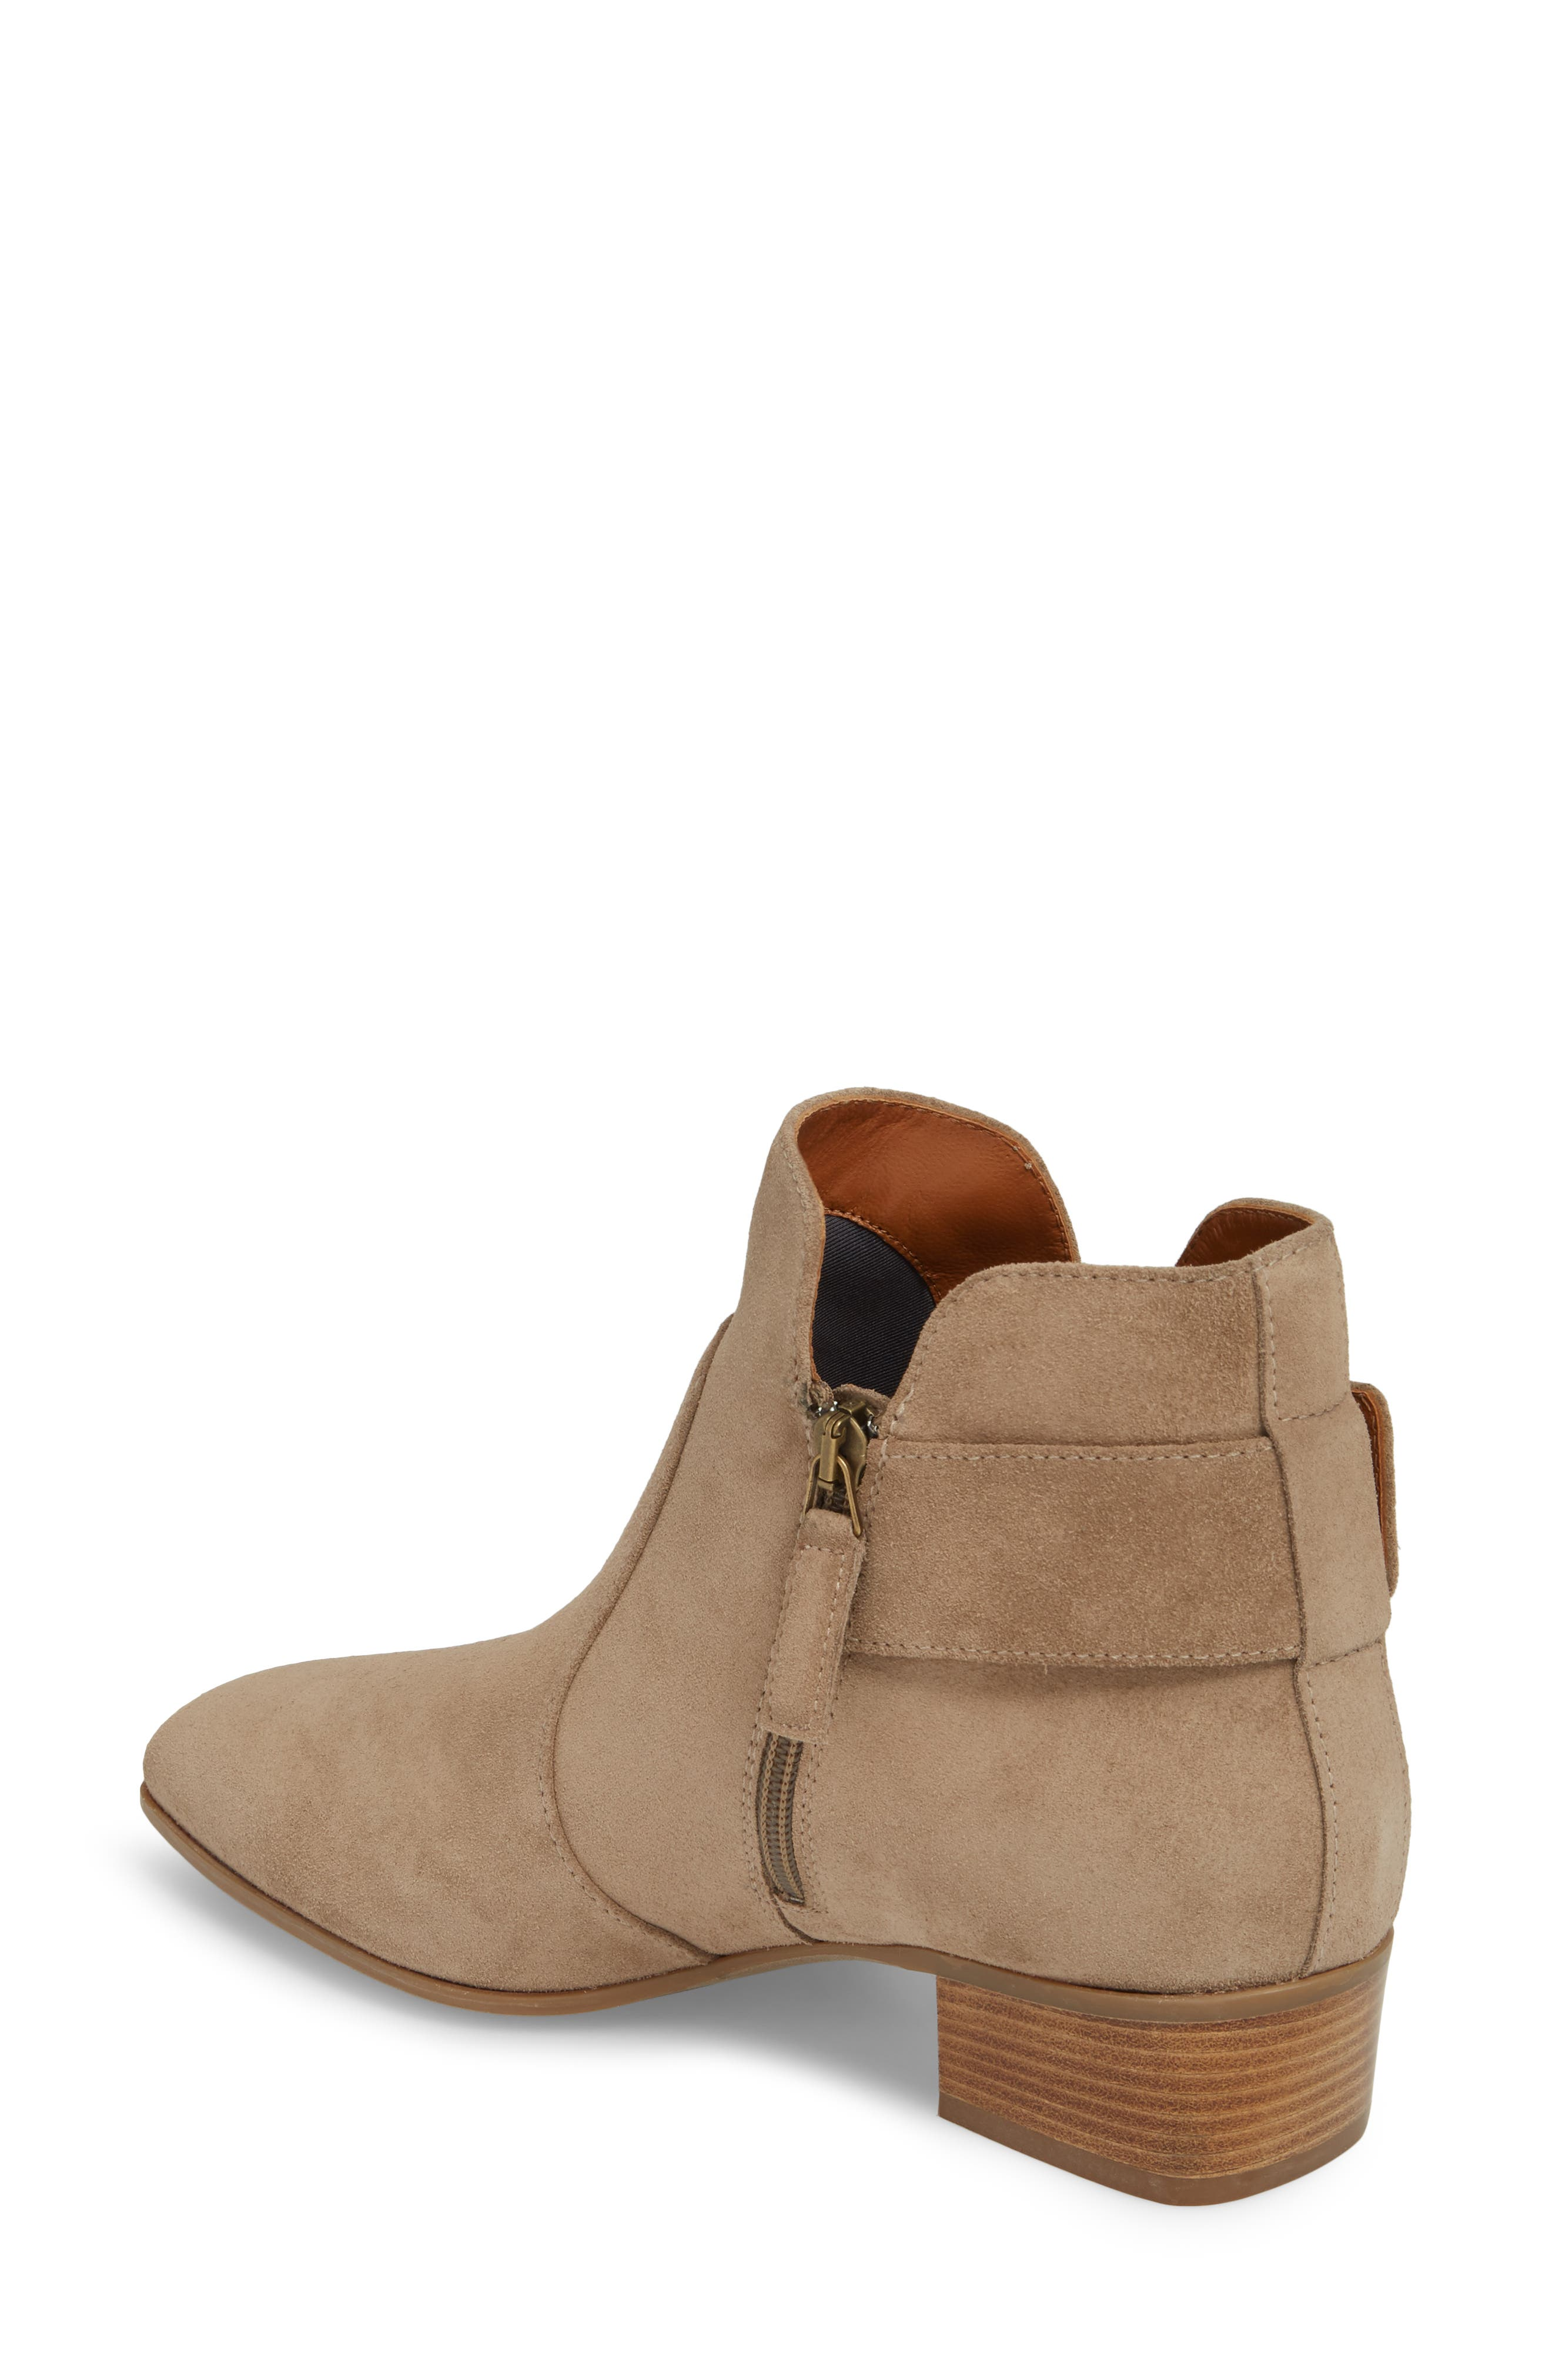 Fiamma Water Resistant Bootie,                             Alternate thumbnail 2, color,                             TAUPE